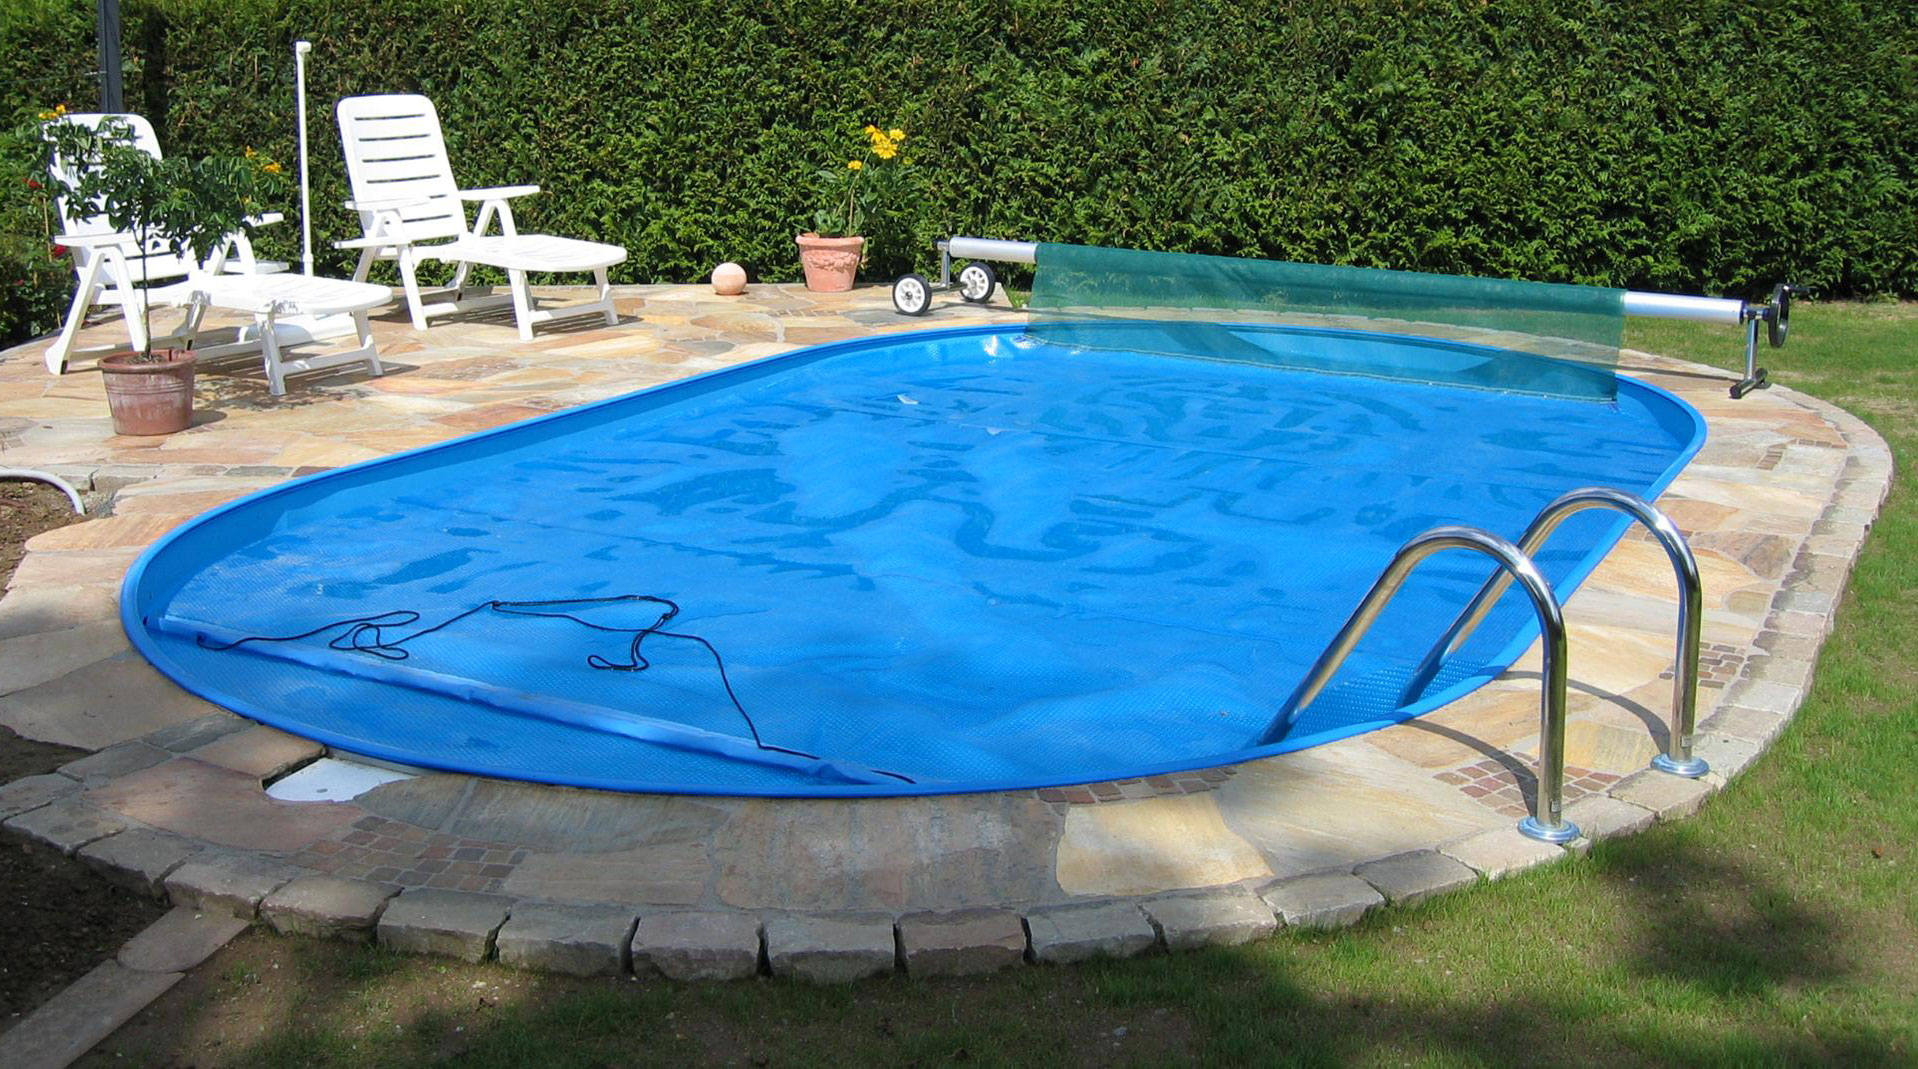 Pool schwimmbecken trend oval mit sandfilter 5 00x3 00x1 for Stahl pool oval